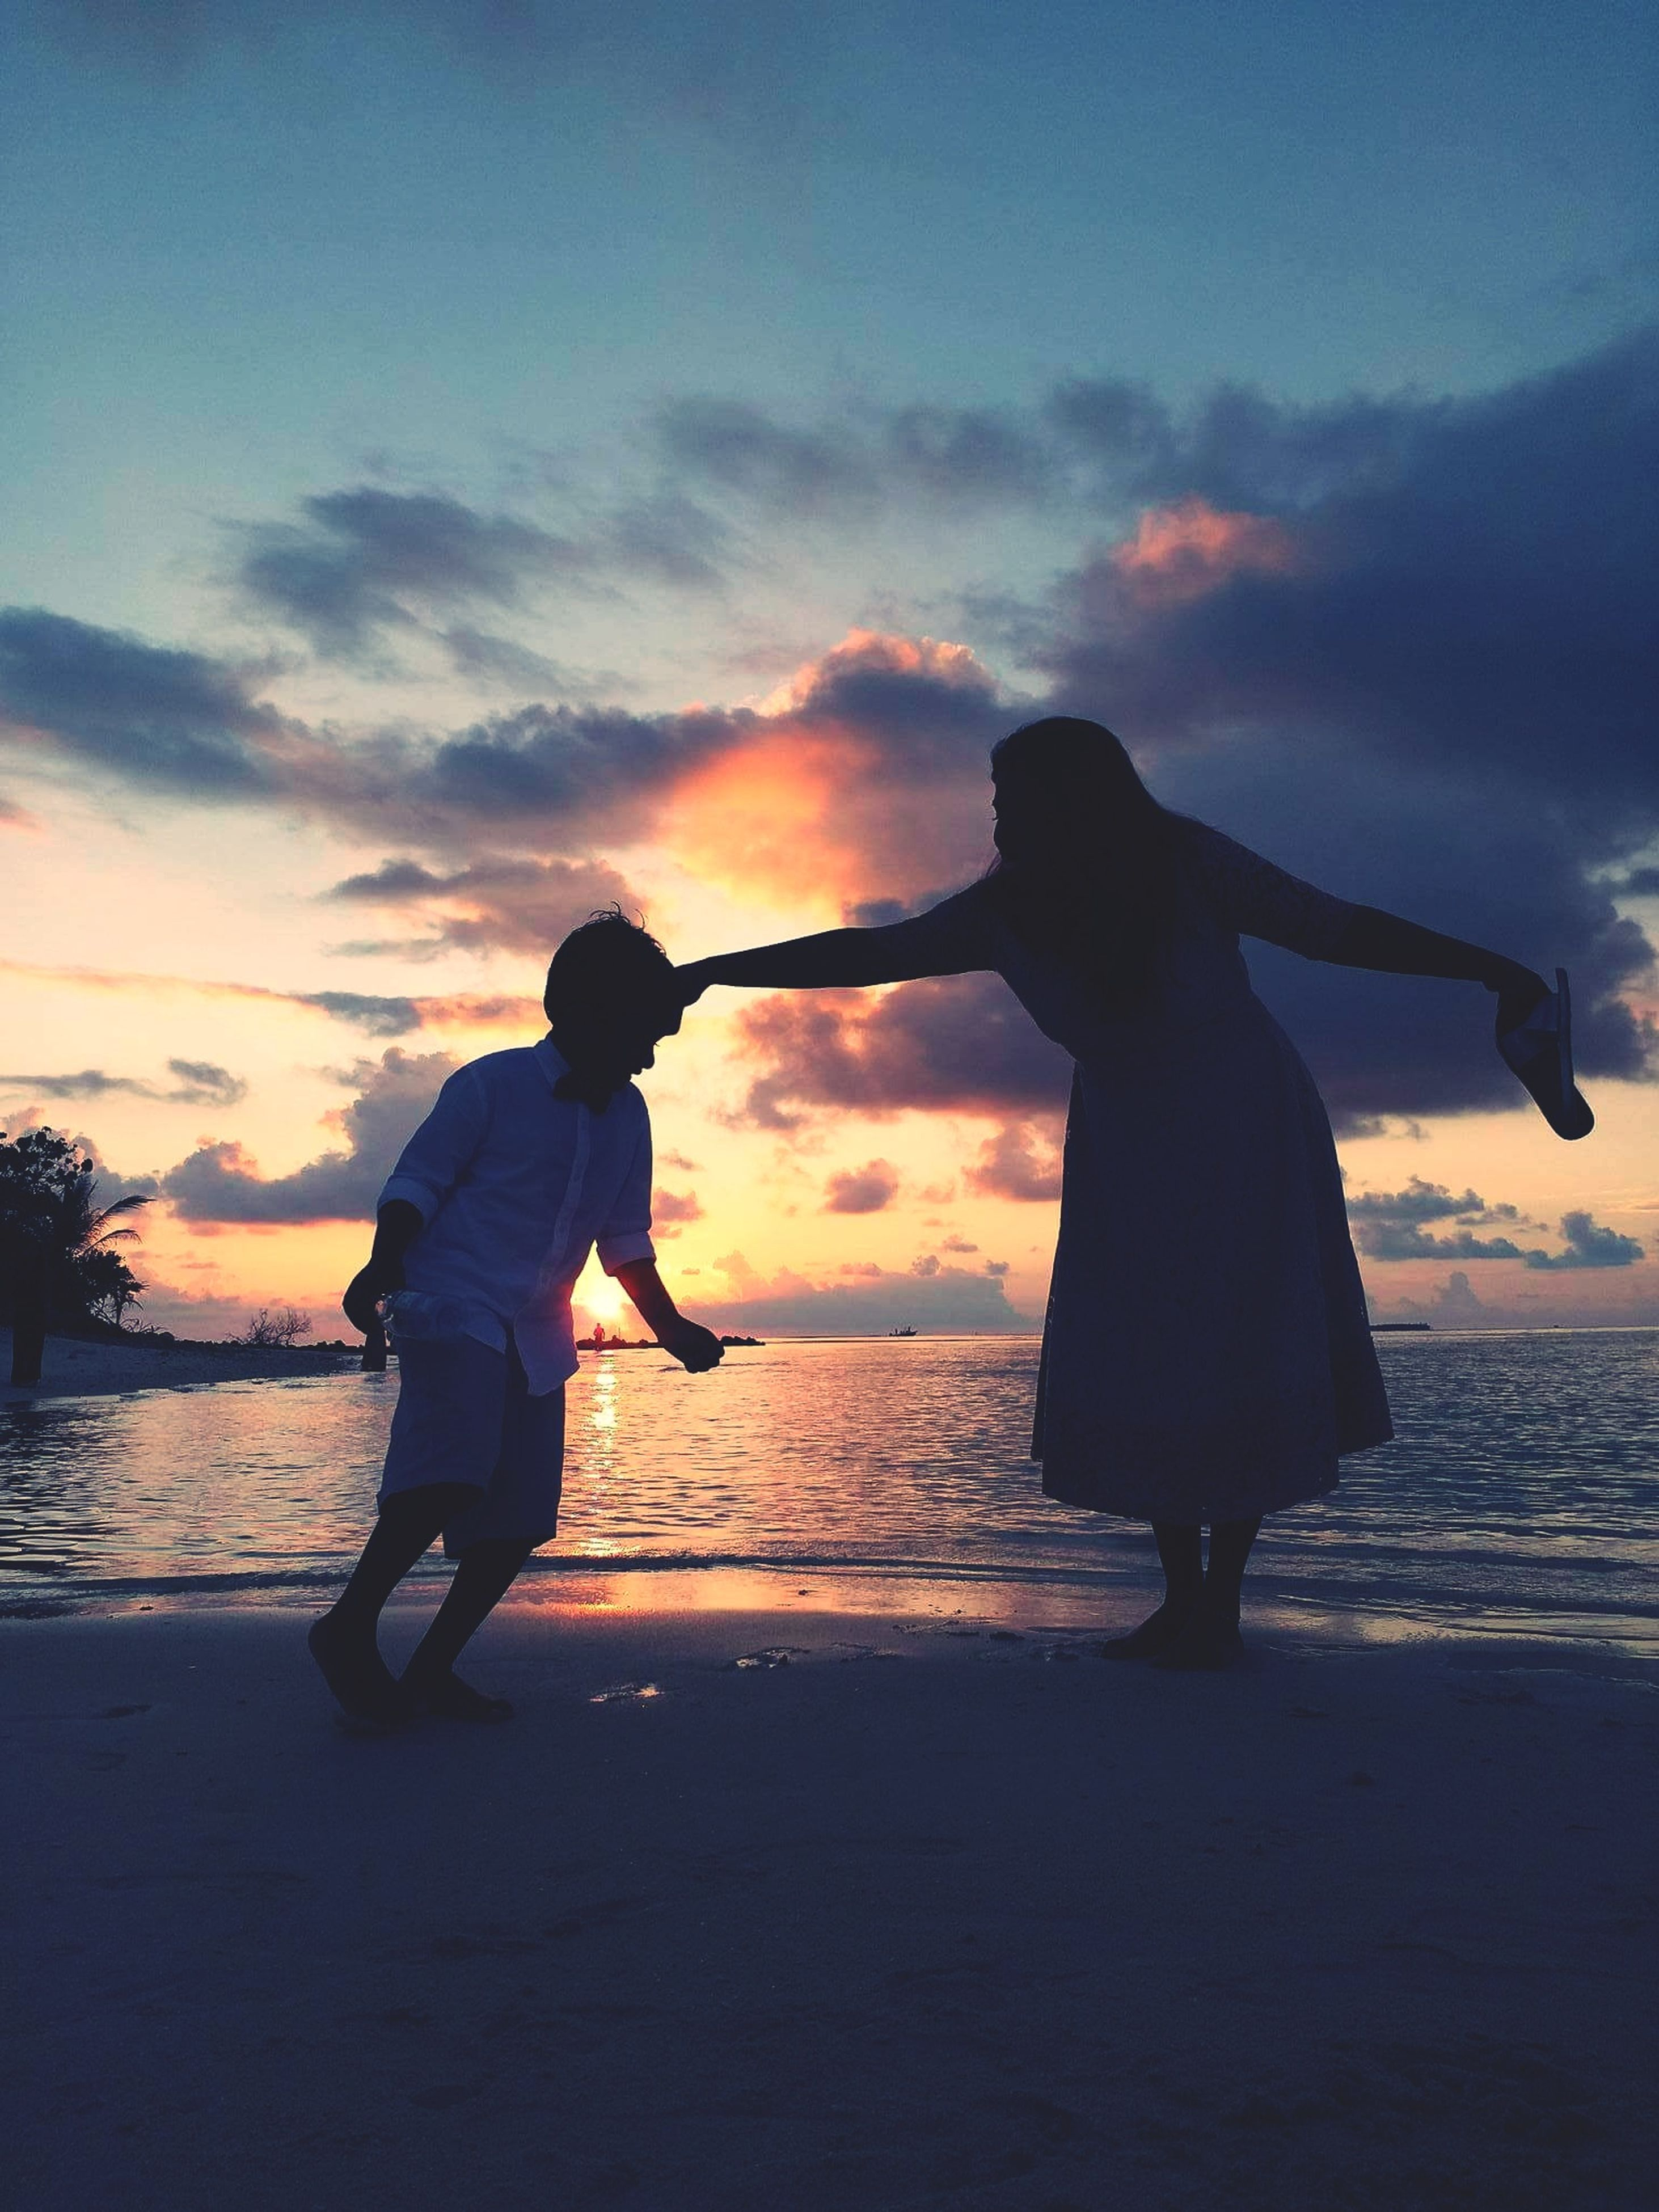 two people, sunset, heterosexual couple, togetherness, bonding, couple - relationship, love, beach, romance, happiness, silhouette, men, adults only, dating, young adult, people, adult, lifestyles, fun, vacations, sky, connection, outdoors, friendship, couple, night